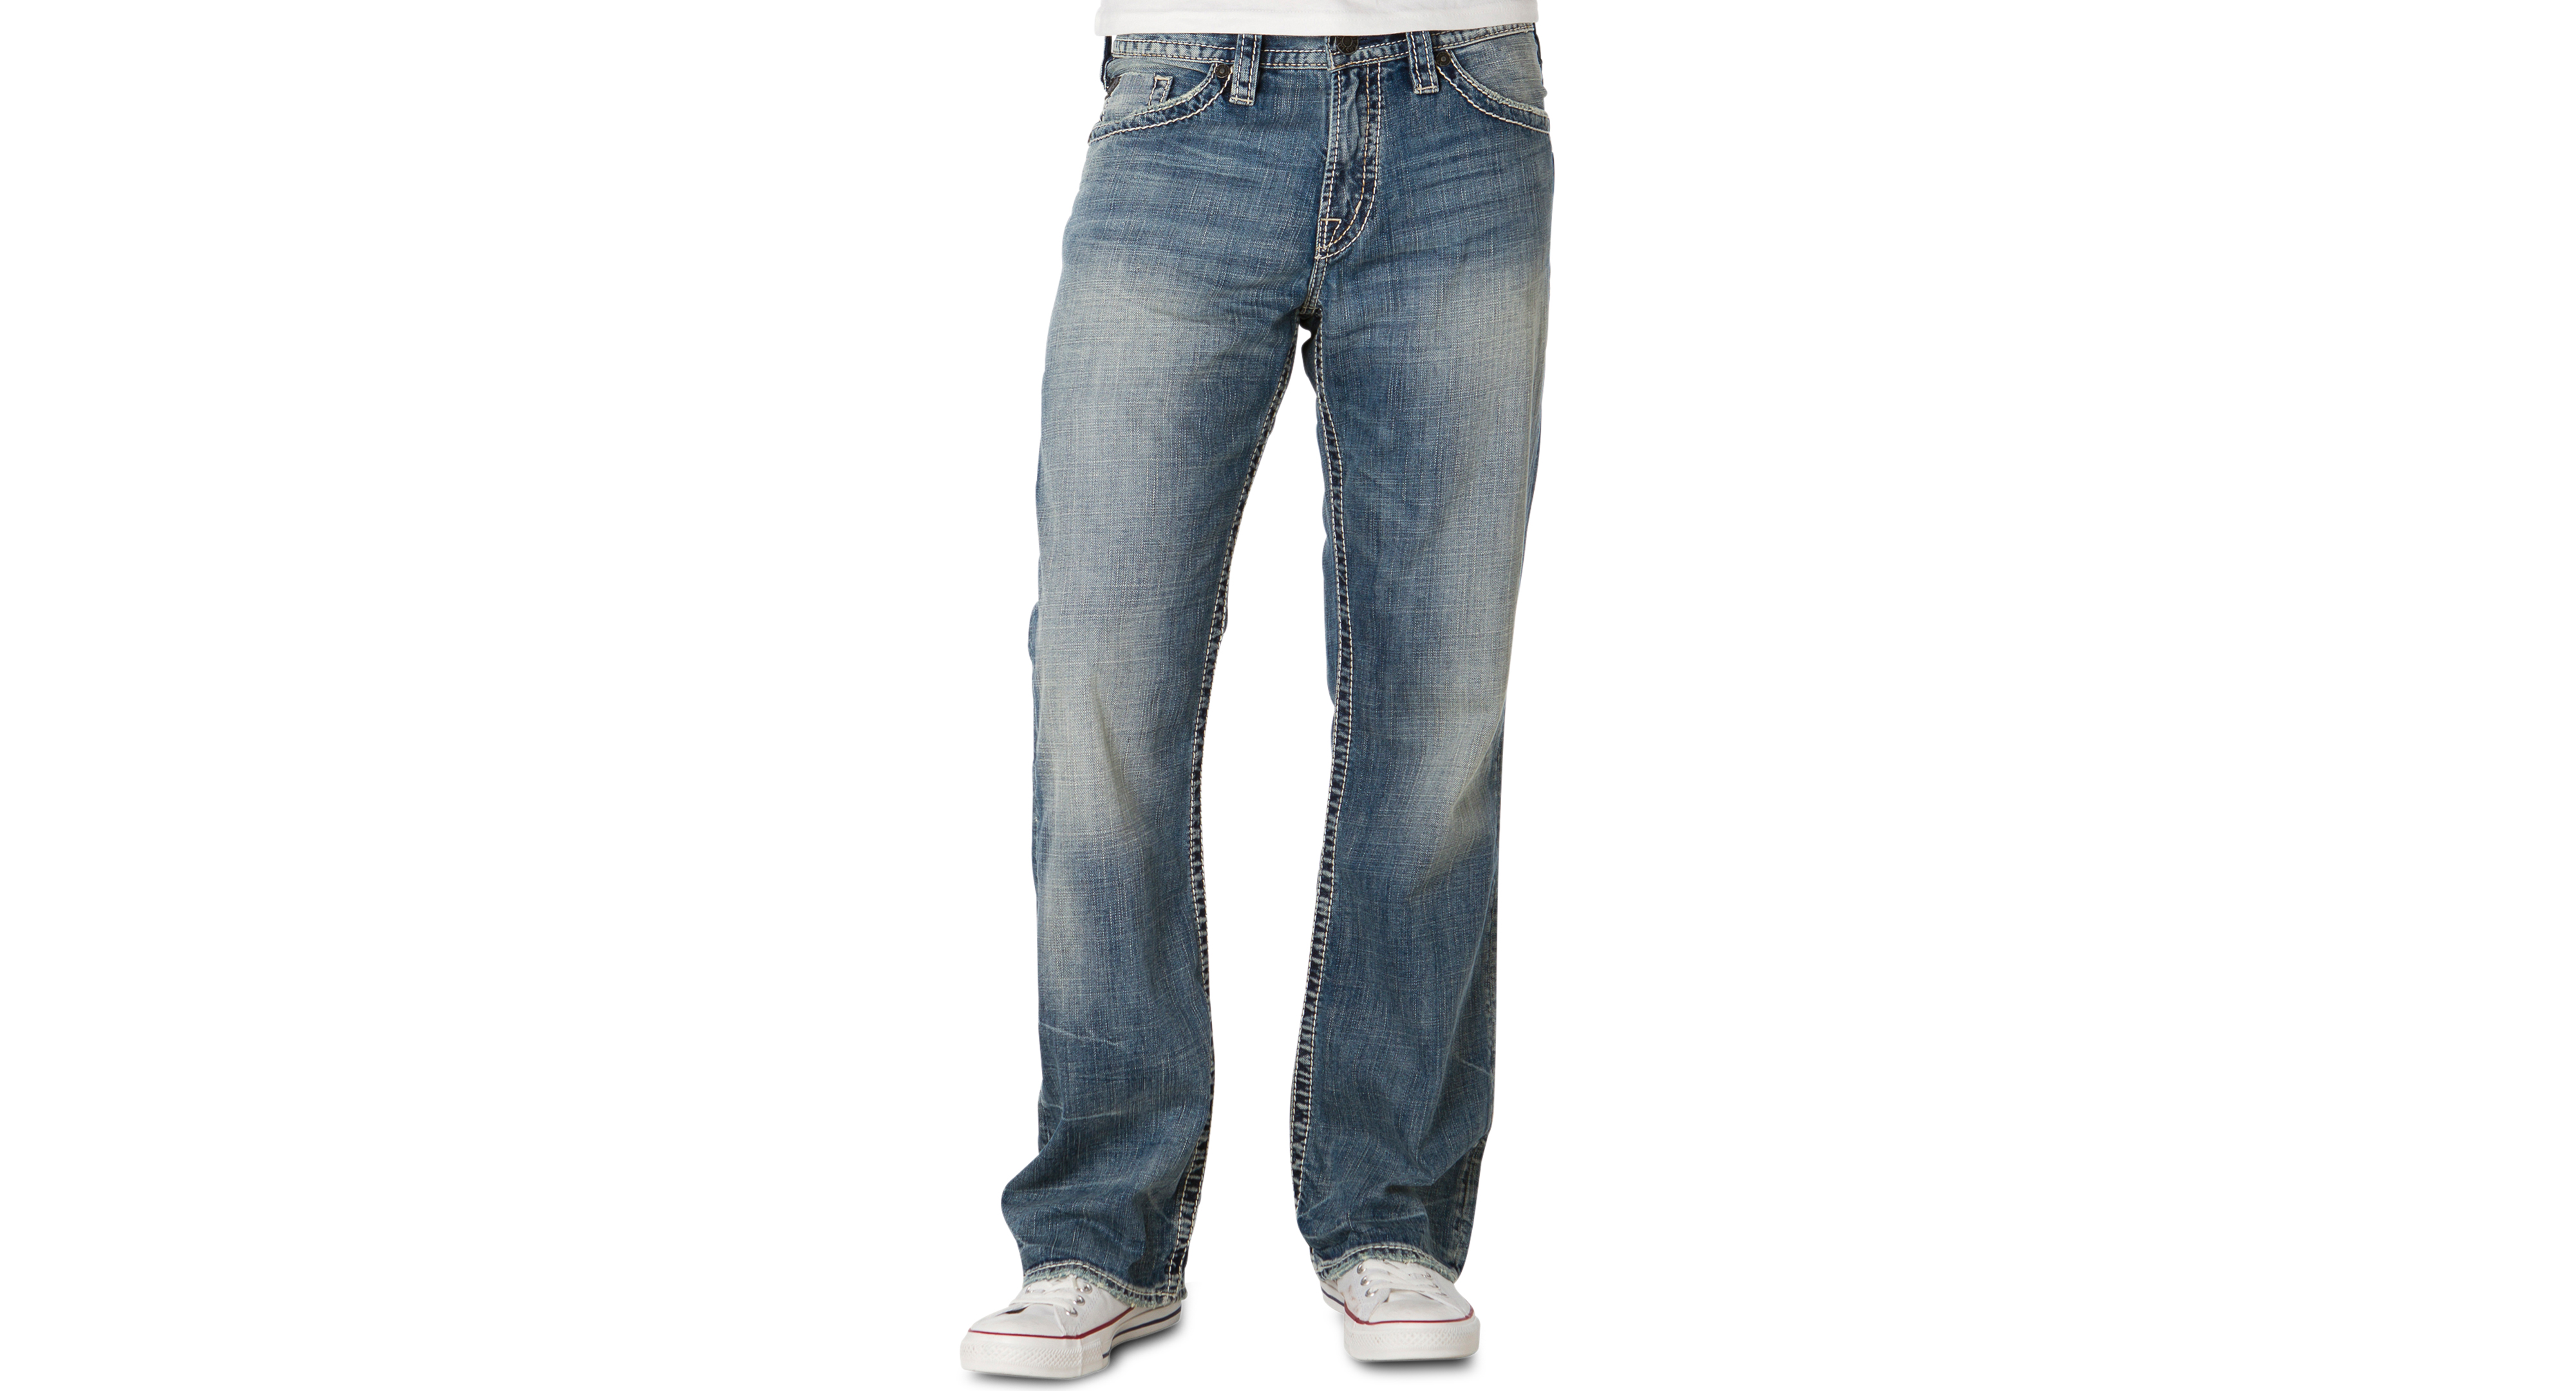 Silver Jeans Grayson Bootcut Relaxed Fit Jeans